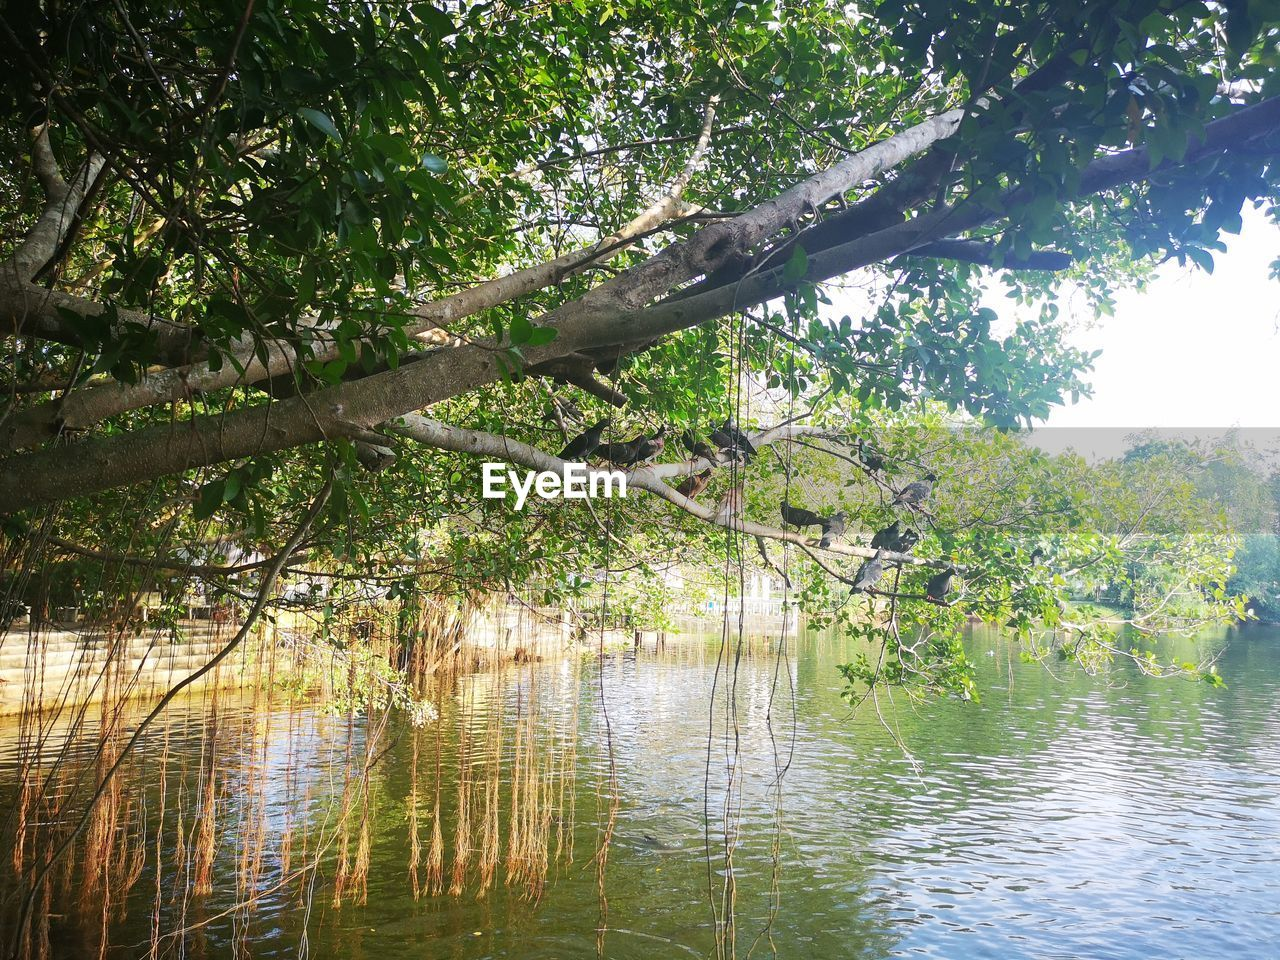 tree, plant, water, lake, tranquility, beauty in nature, nature, forest, growth, no people, day, tranquil scene, scenics - nature, green color, land, reflection, branch, outdoors, leaves